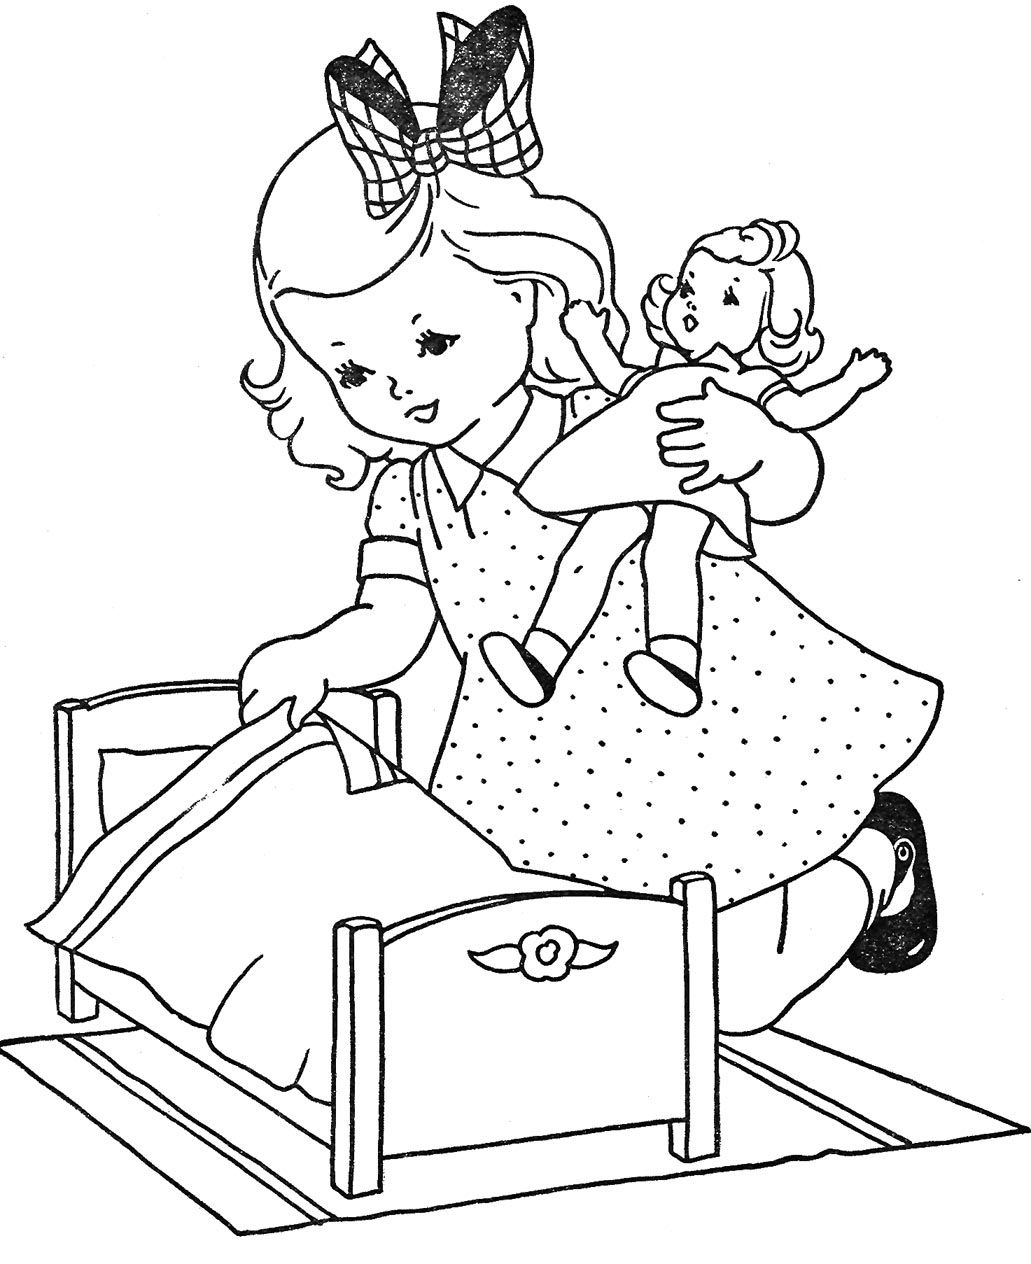 coloring printouts for kids caillou coloring pages best coloring pages for kids kids coloring printouts for